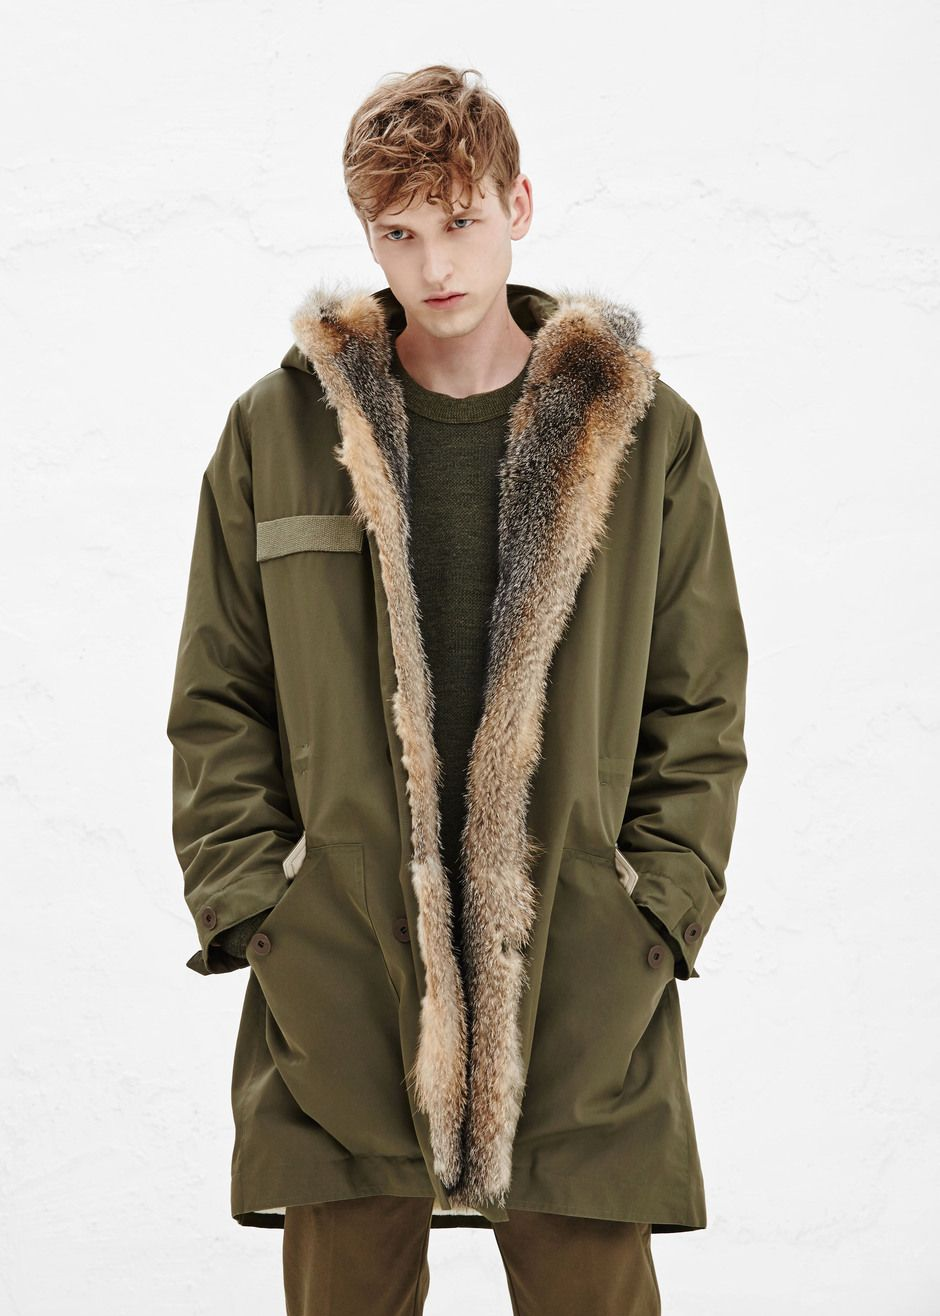 54a1f5cca786 A.P.C. Kanye Parka With Fur in Kaki Militaire — http   man.totokaelo